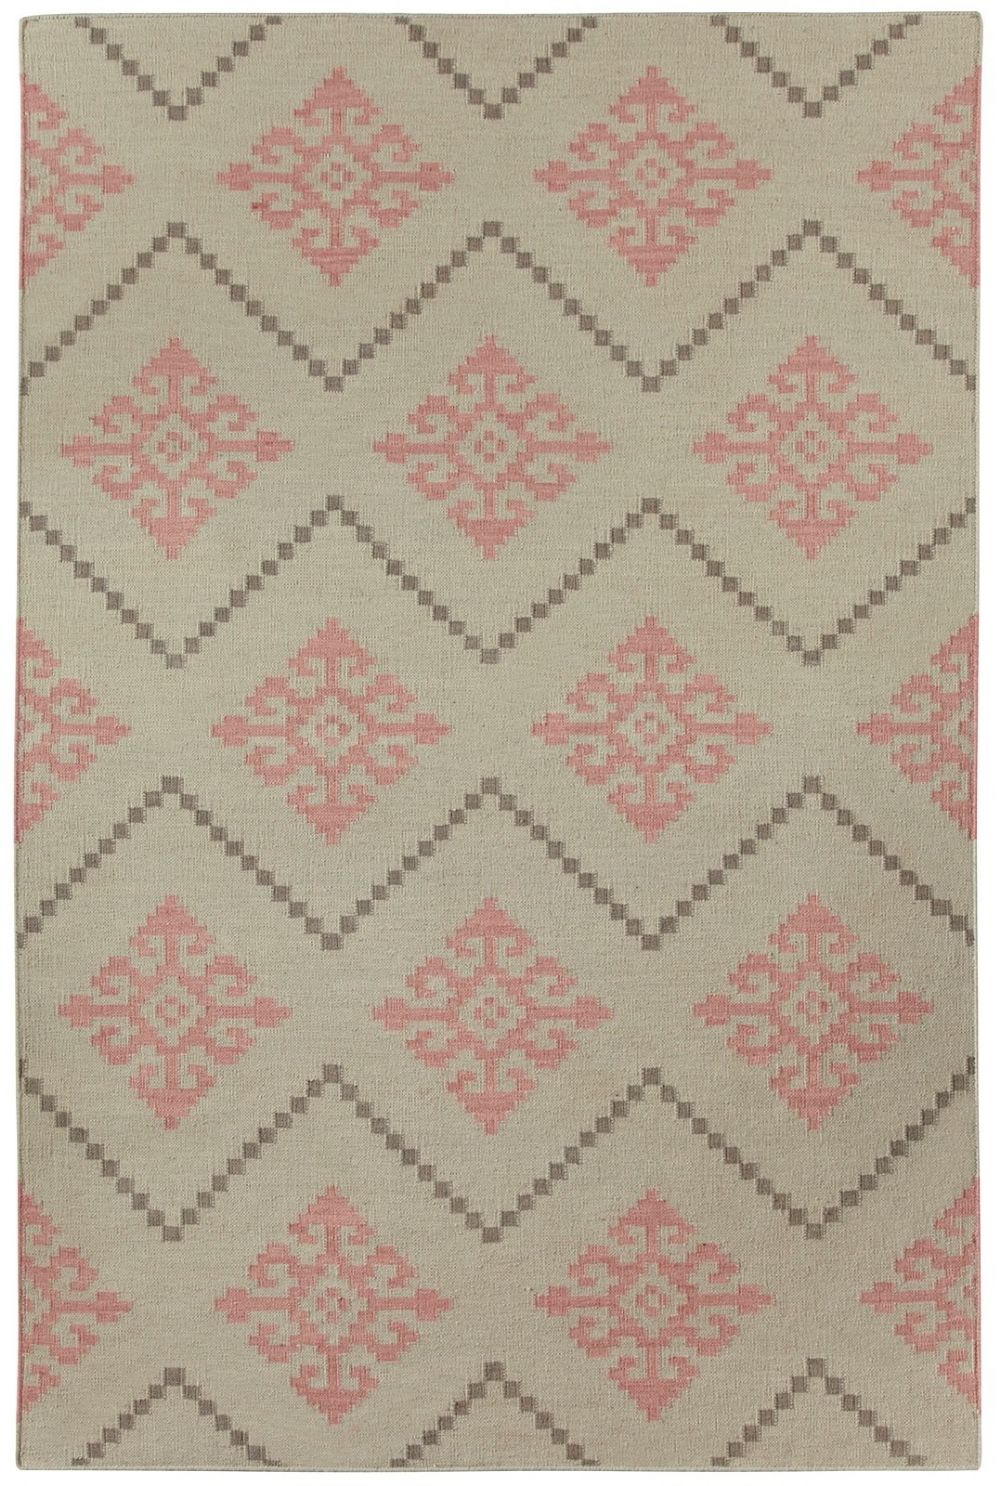 capel flakes contemporary area rug collection